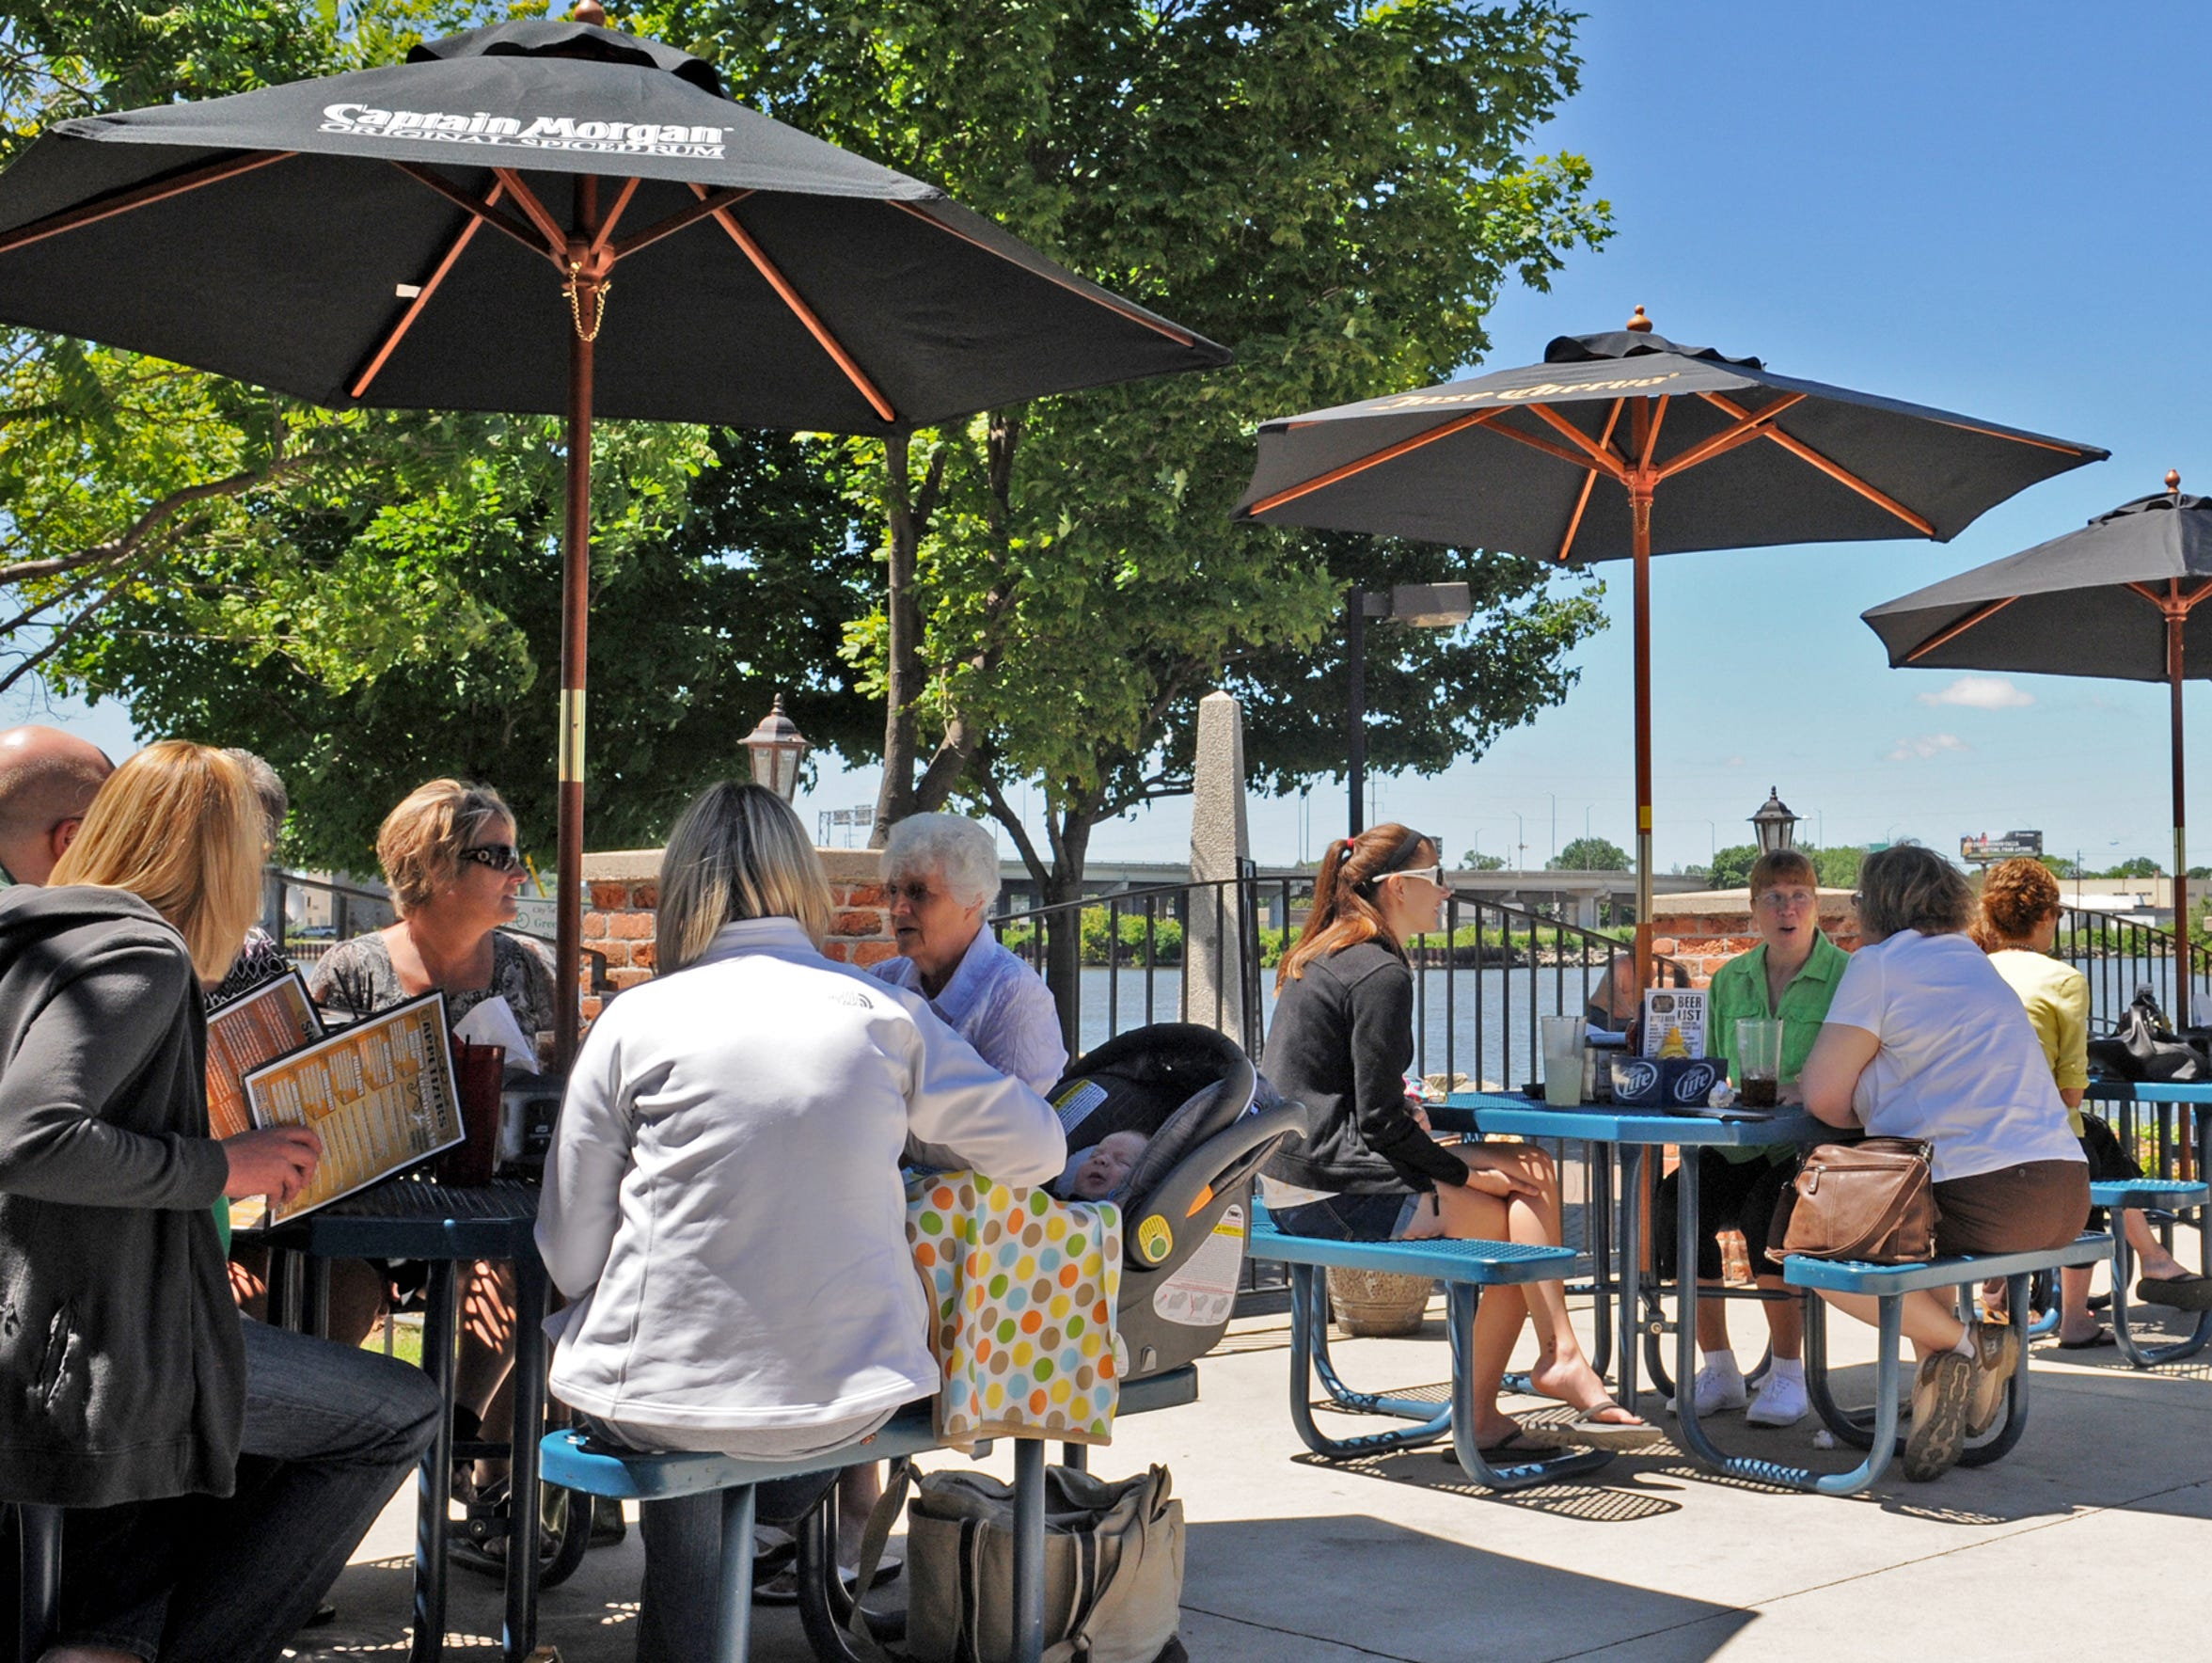 Fox Harbor Pub and Grill has a patio that overlooks